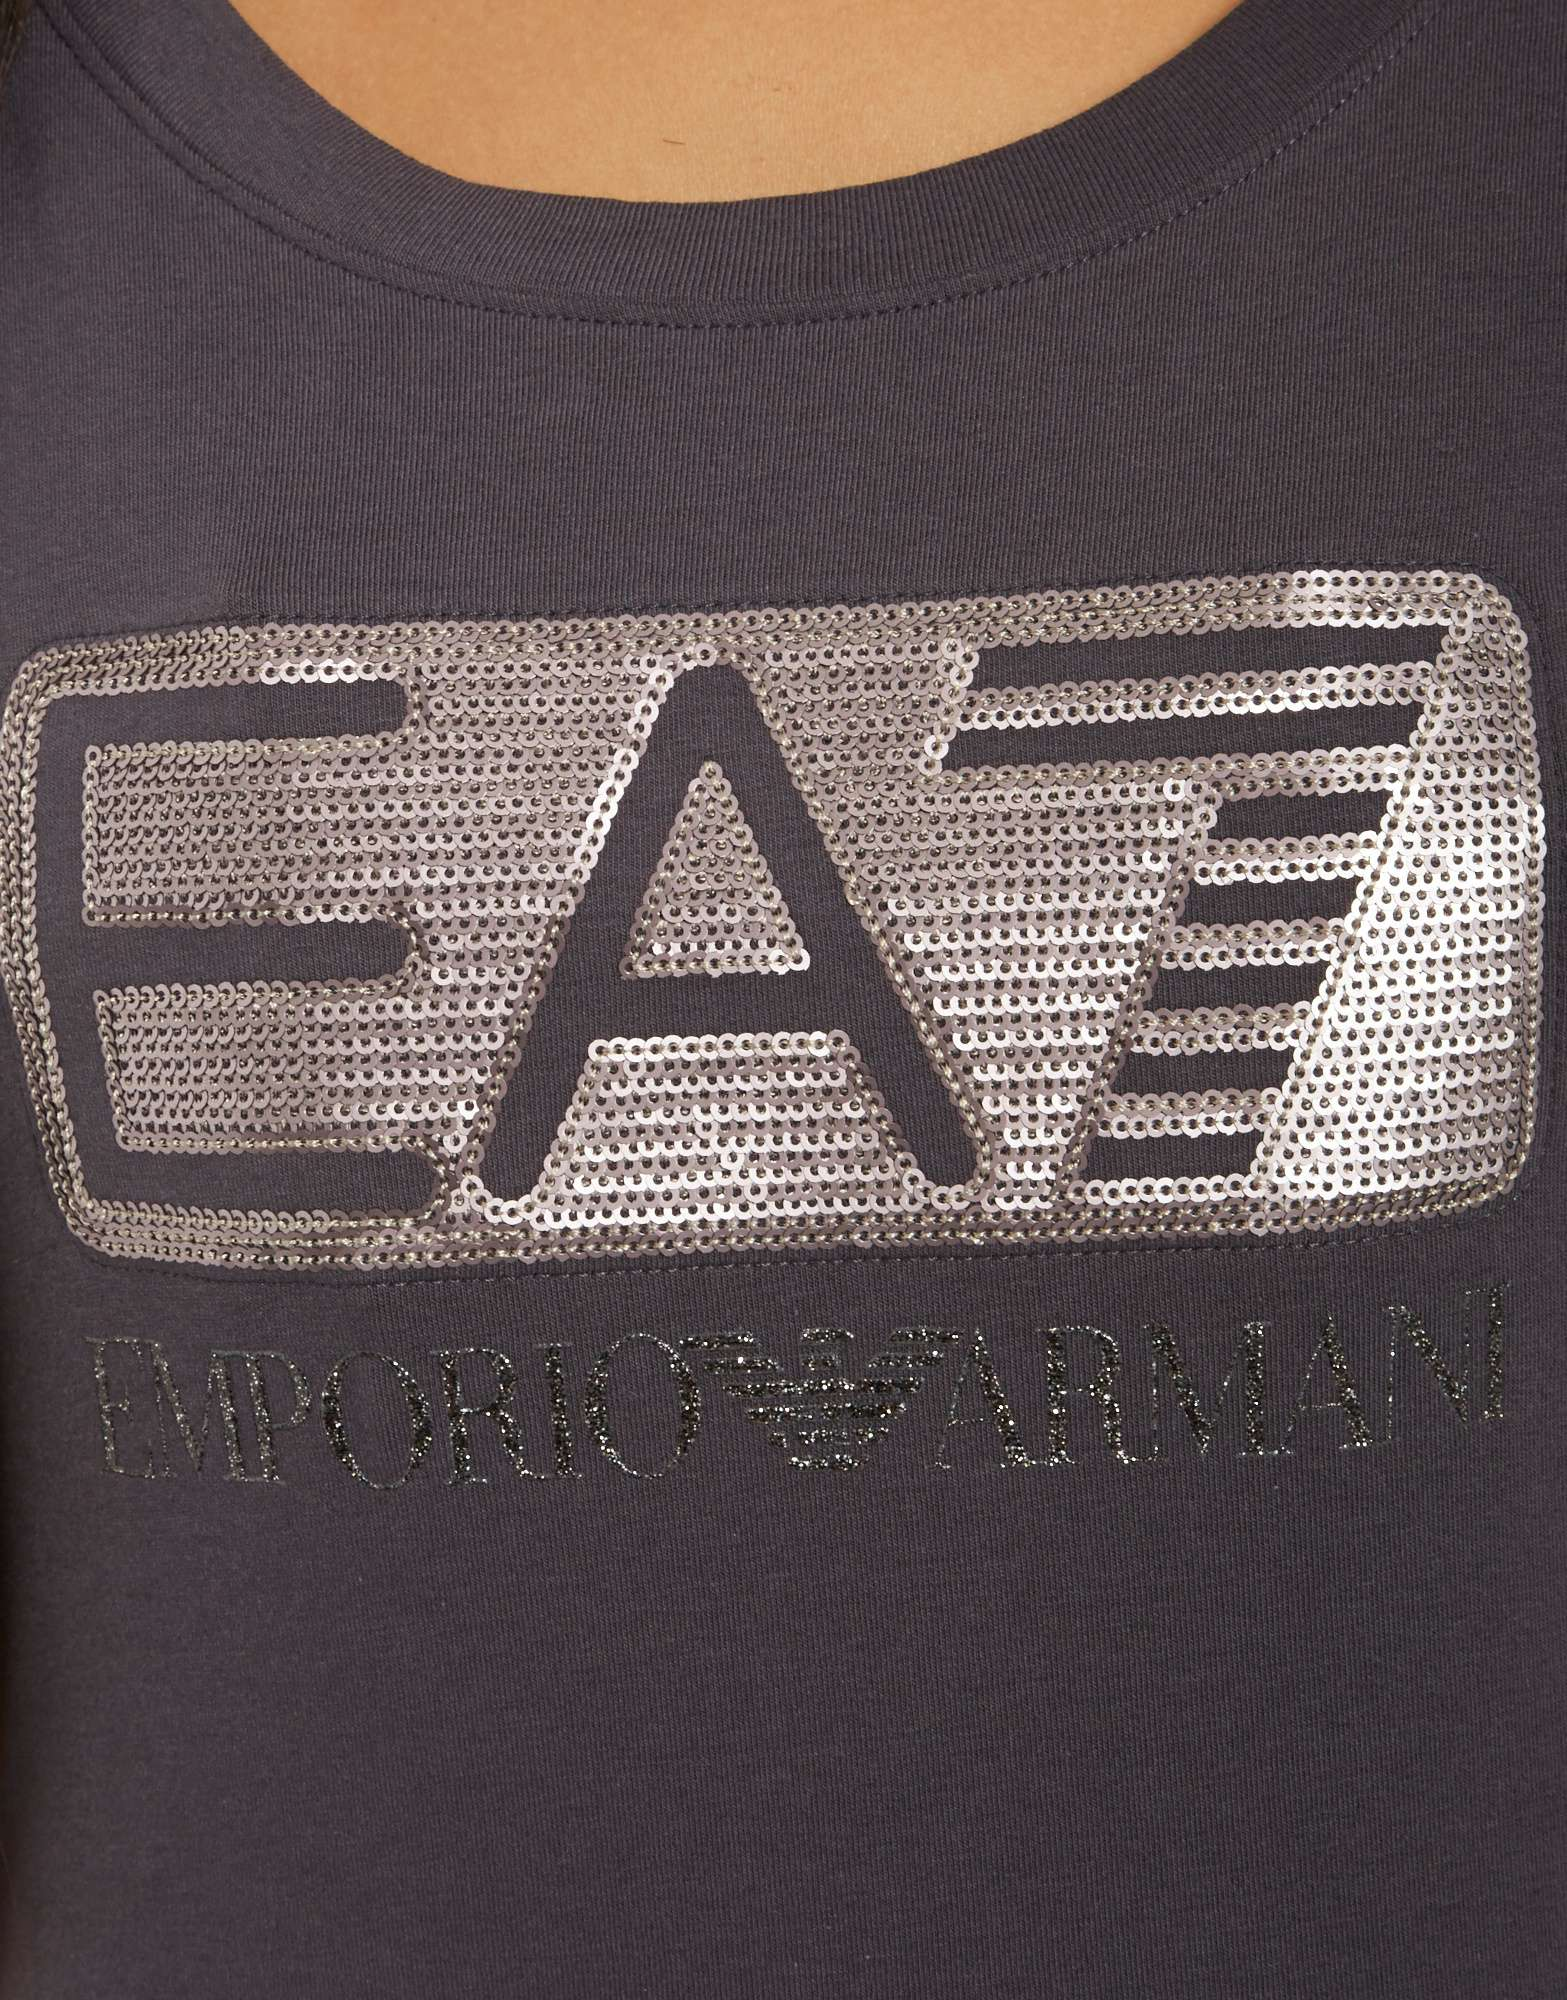 Emporio Armani EA7 Graphic Sequins T-Shirt